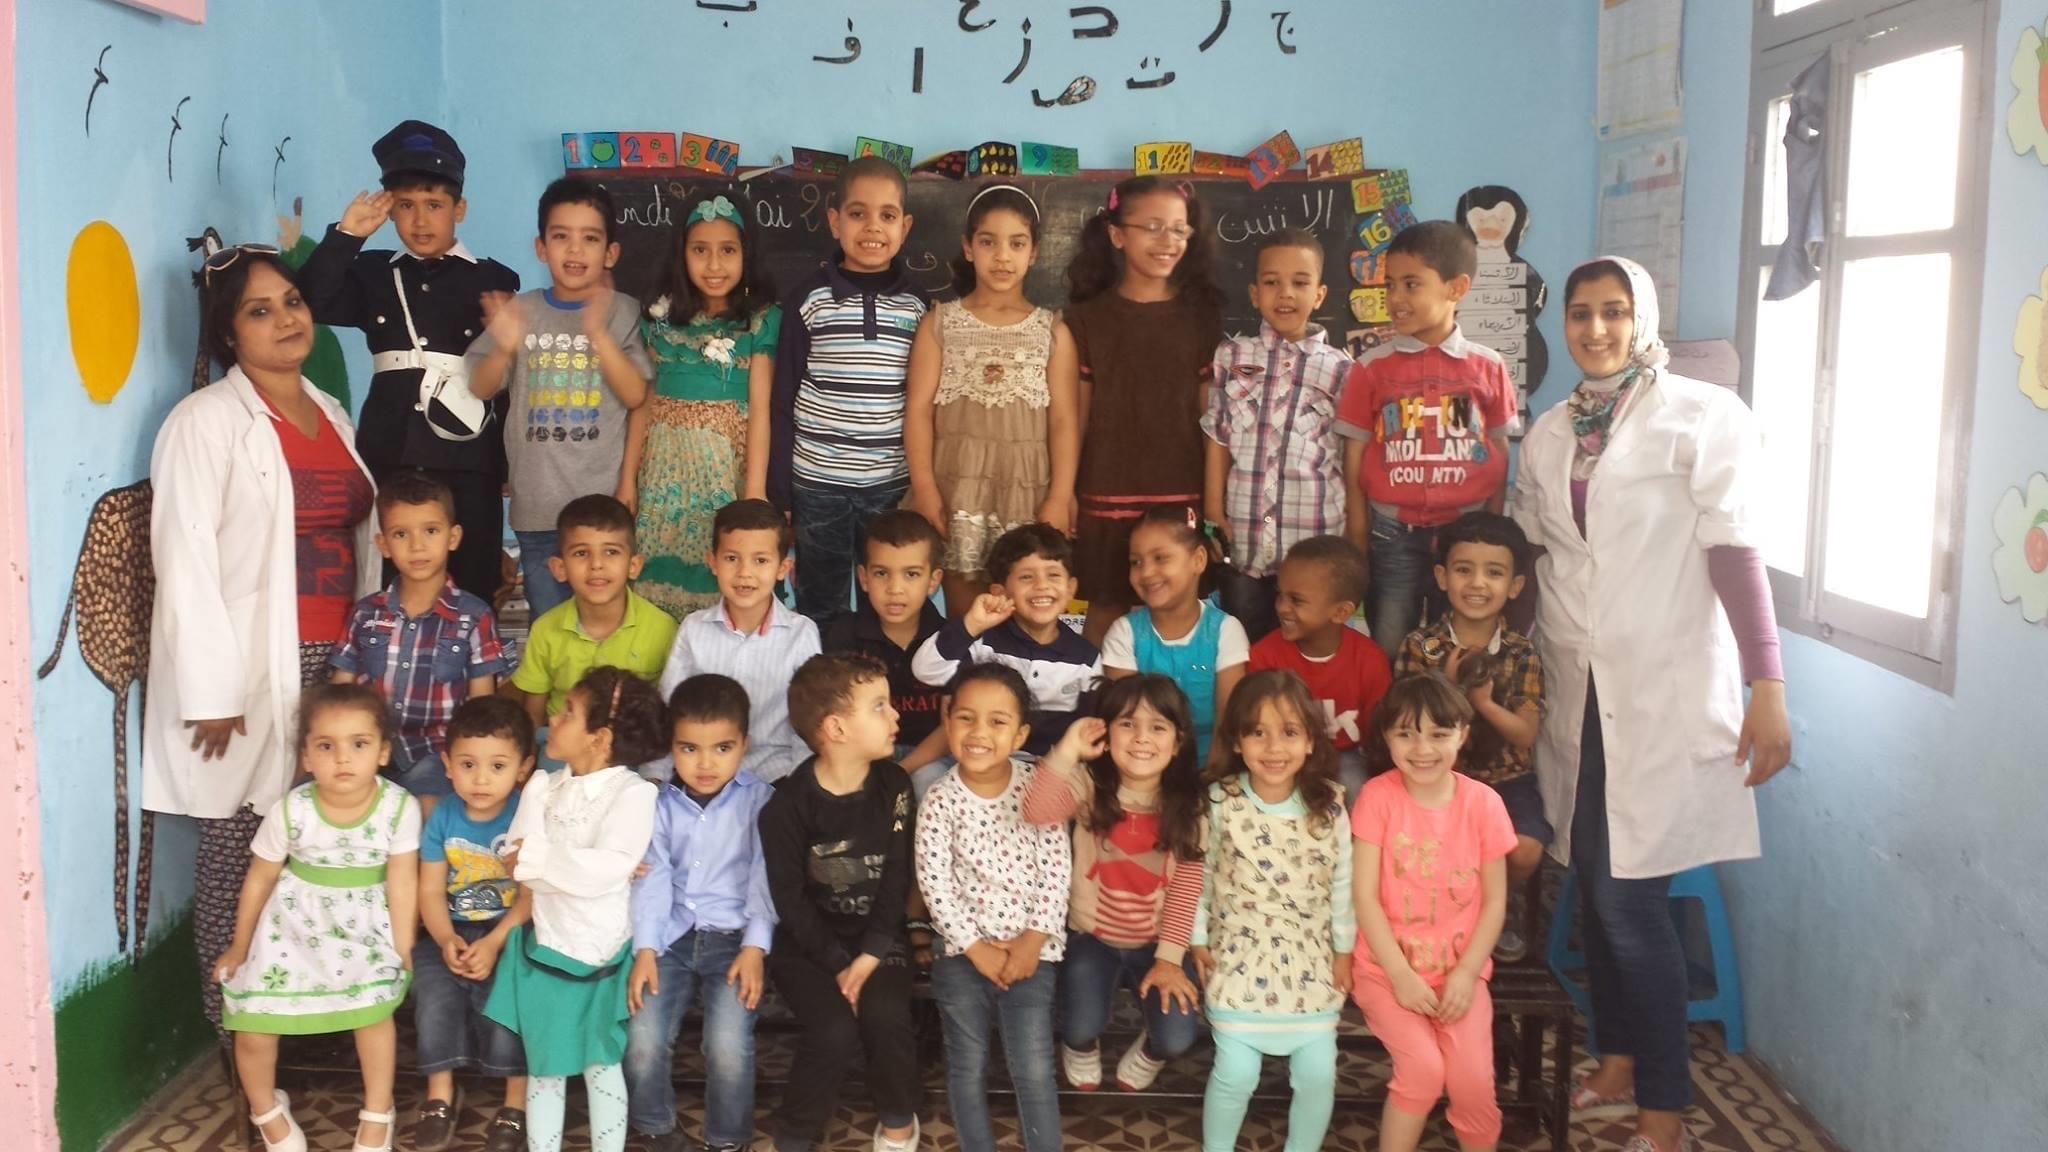 Preschool children at Aliwaa School celebrate the end of the year